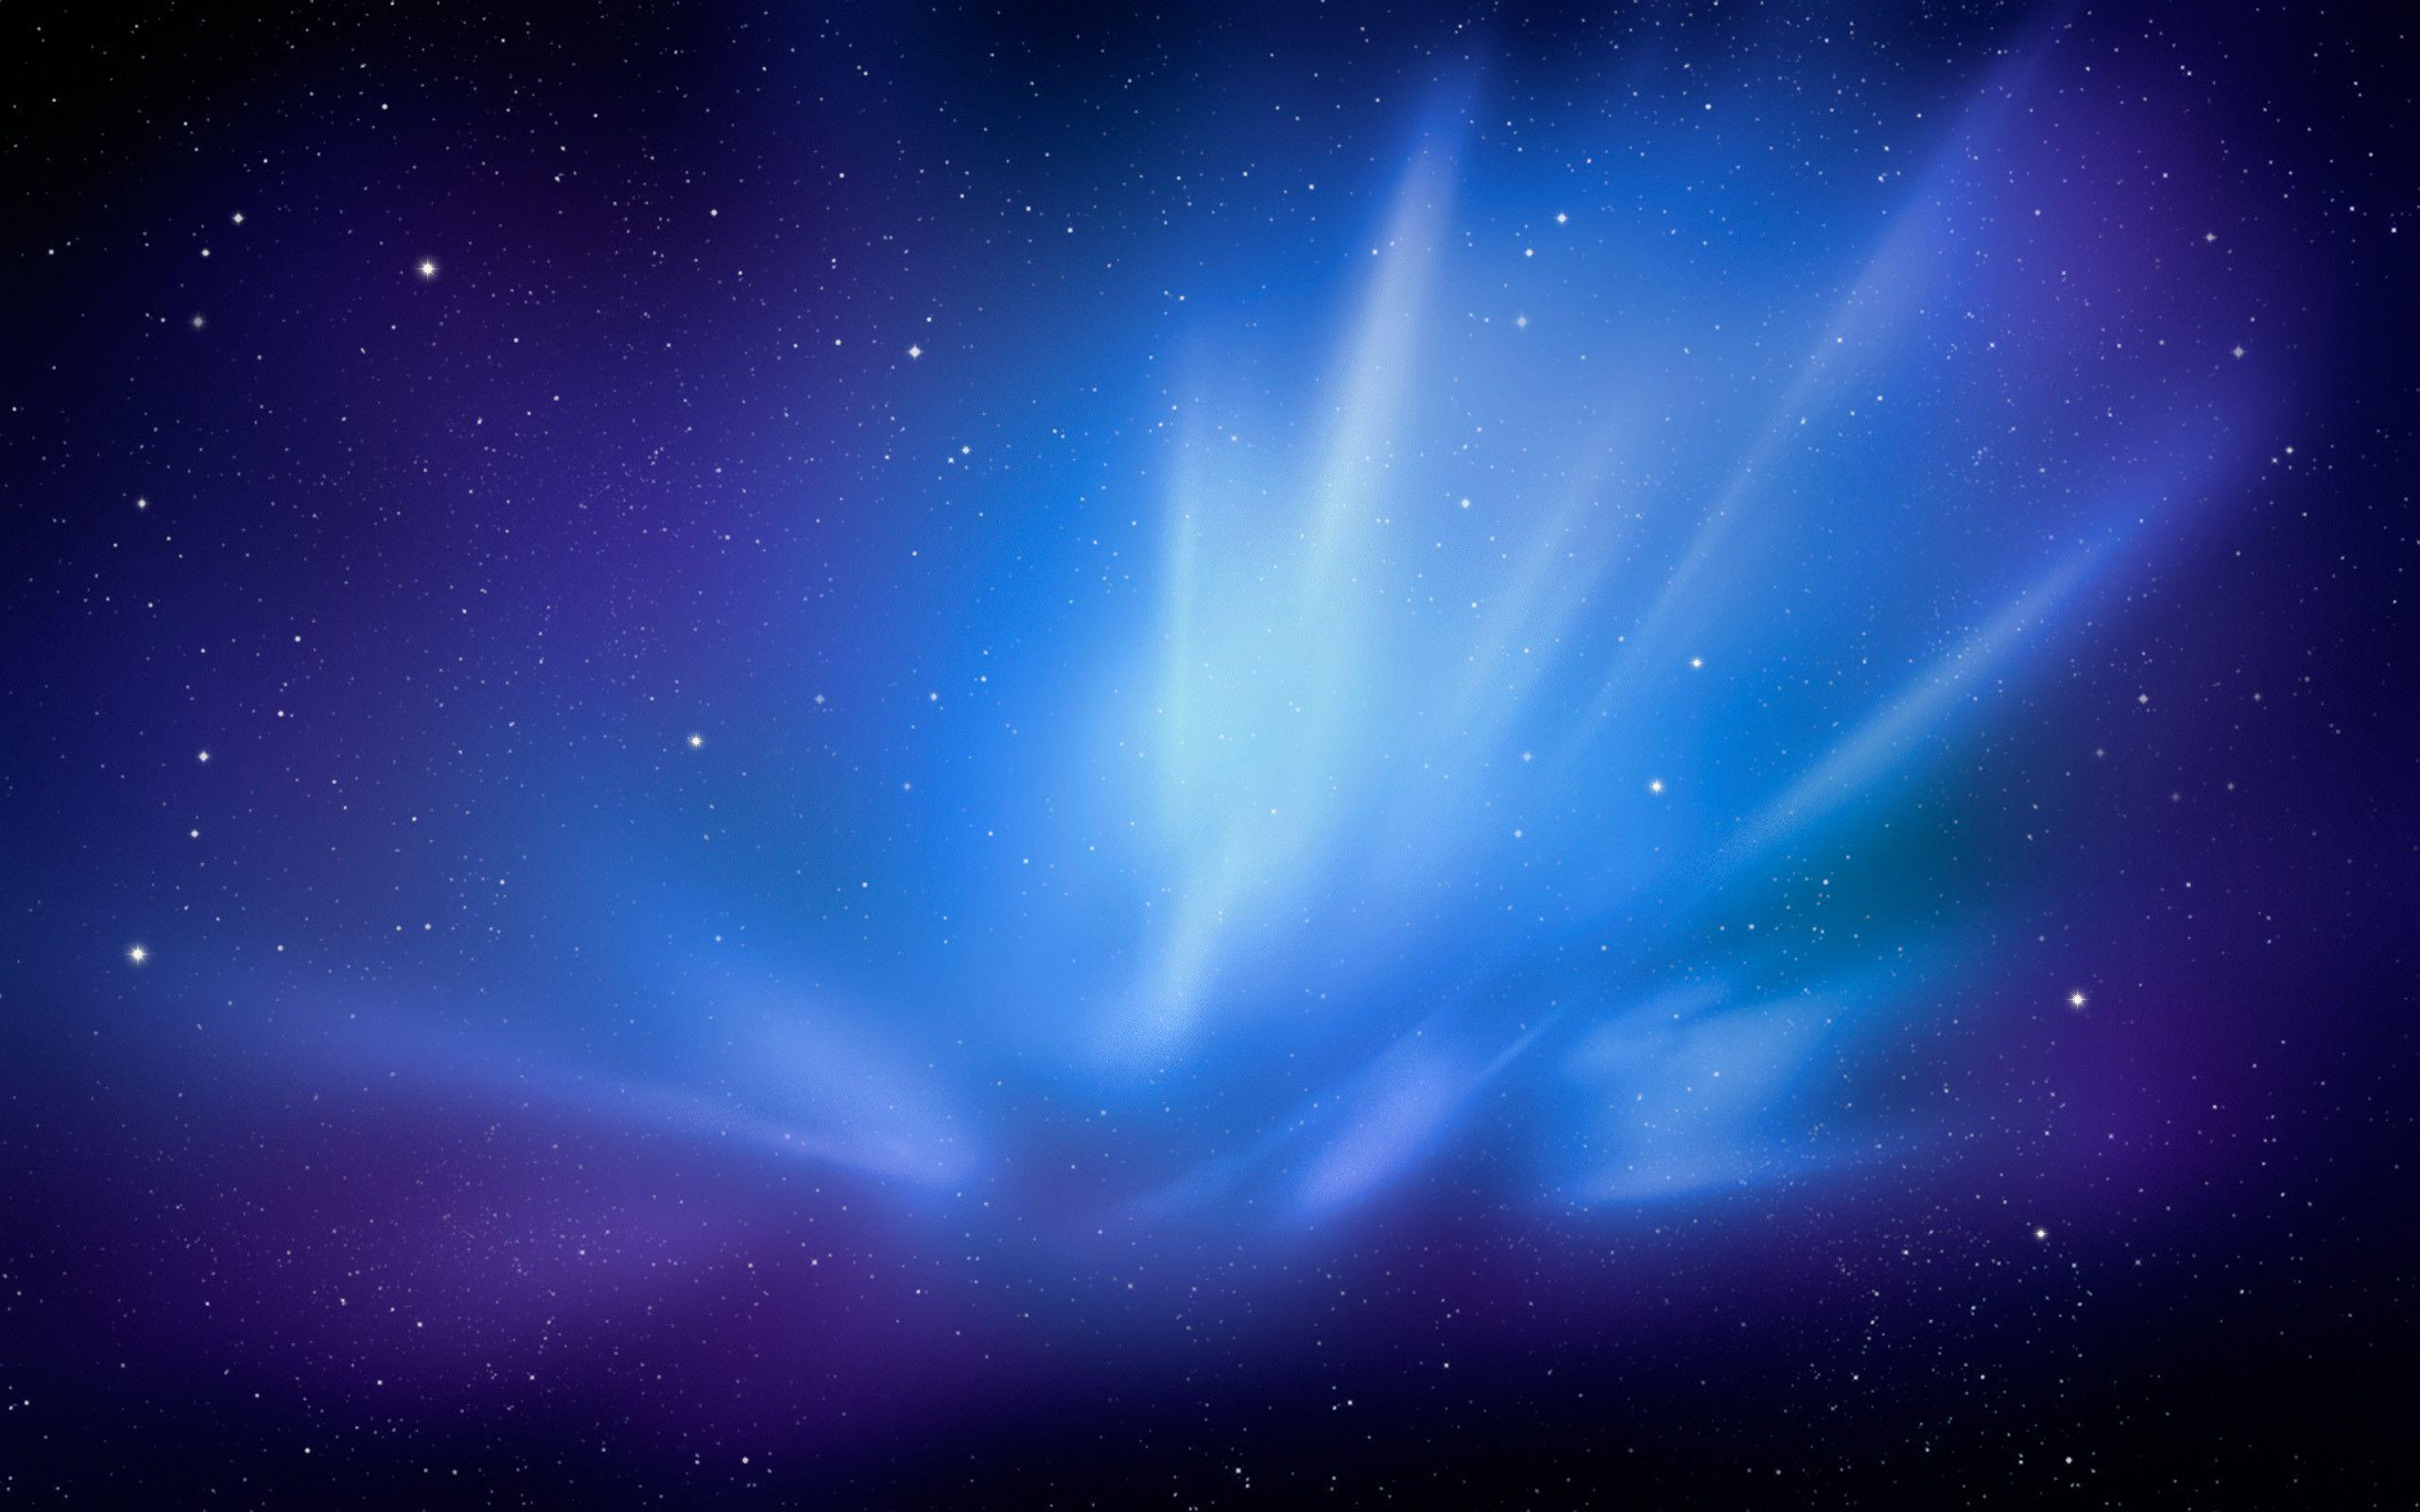 15 Awesome High Resolution Wallpapers to Spice Up Your Desktop